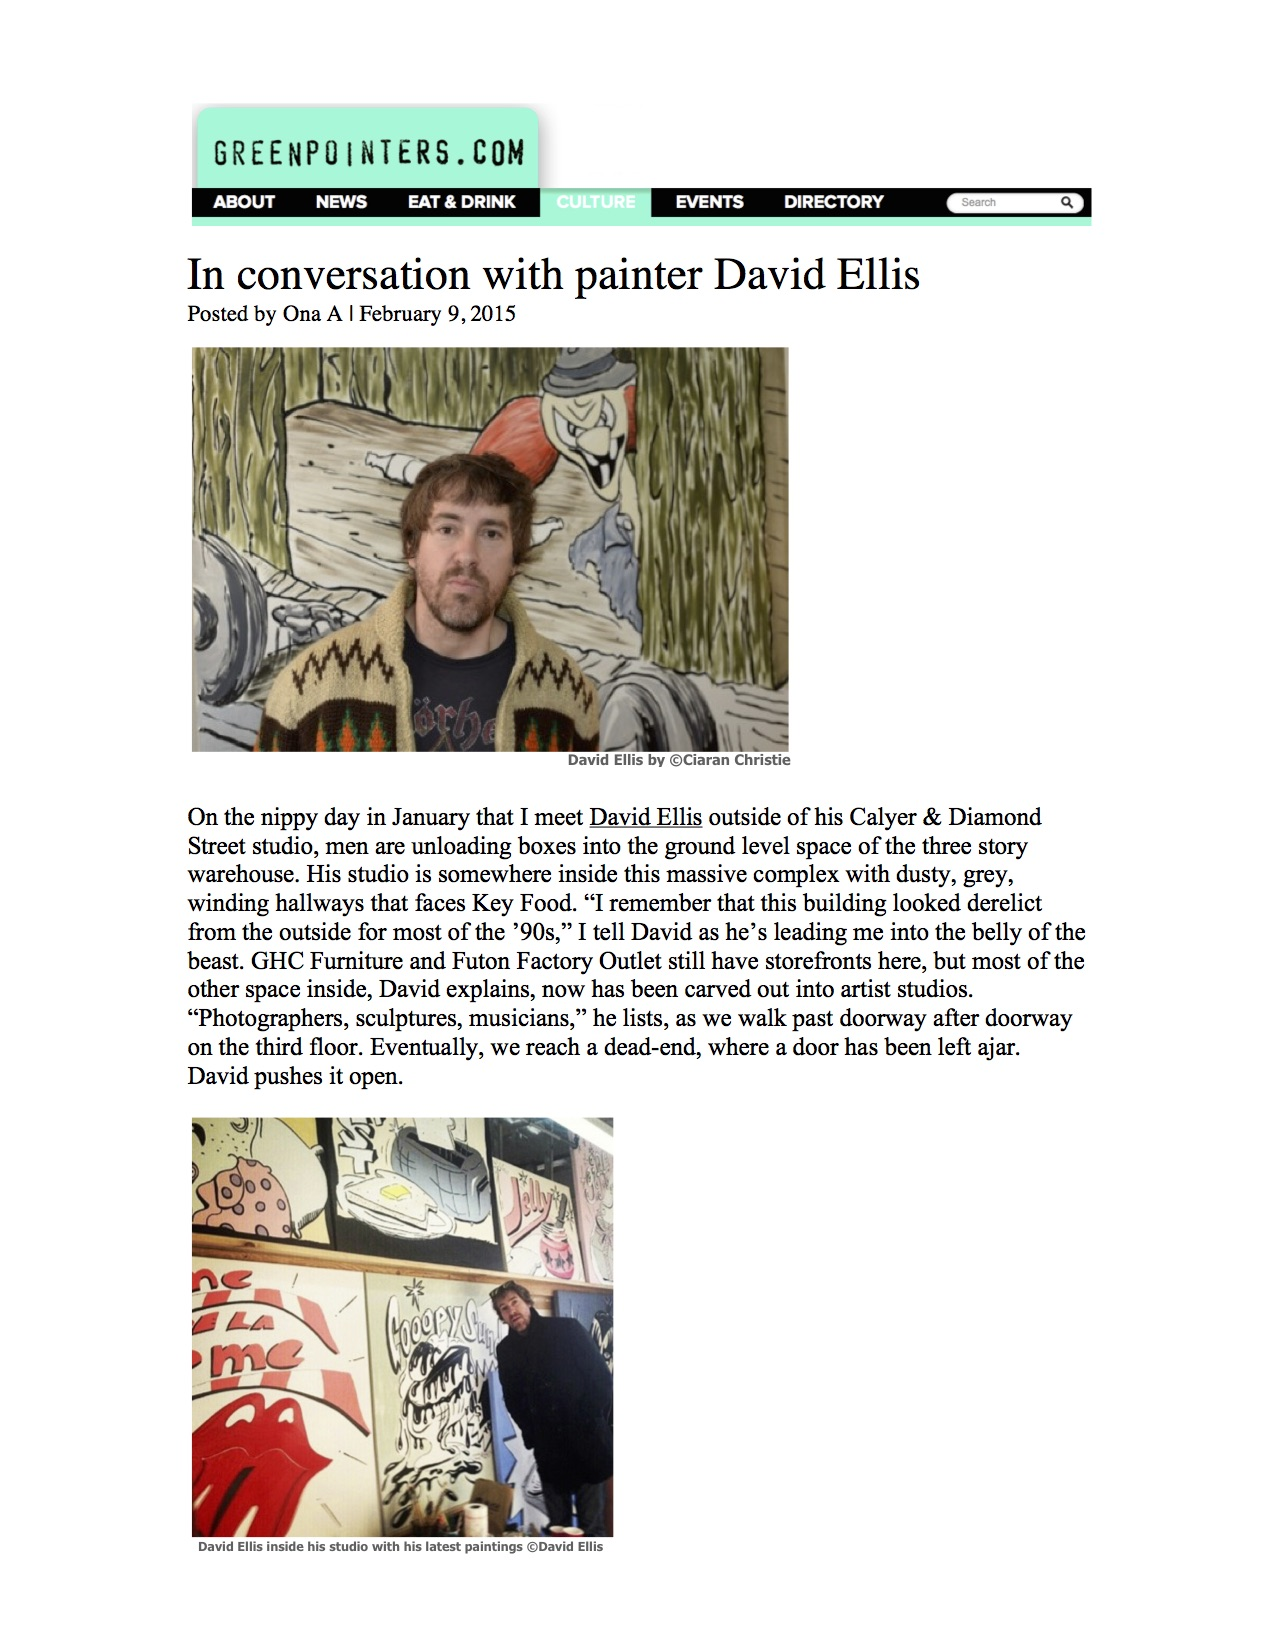 In conversation with painter David Ellis.jpg